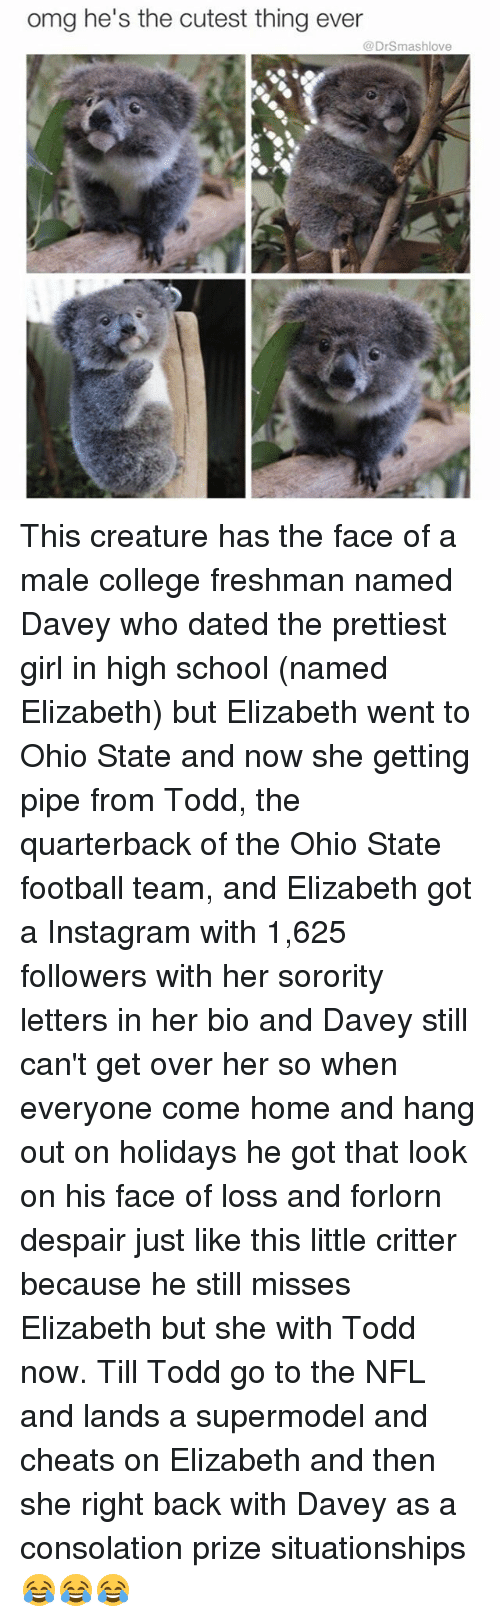 college freshman: omg he's the cutest thing ever  @DrSmashlove This creature has the face of a male college freshman named Davey who dated the prettiest girl in high school (named Elizabeth) but Elizabeth went to Ohio State and now she getting pipe from Todd, the quarterback of the Ohio State football team, and Elizabeth got a Instagram with 1,625 followers with her sorority letters in her bio and Davey still can't get over her so when everyone come home and hang out on holidays he got that look on his face of loss and forlorn despair just like this little critter because he still misses Elizabeth but she with Todd now. Till Todd go to the NFL and lands a supermodel and cheats on Elizabeth and then she right back with Davey as a consolation prize situationships 😂😂😂